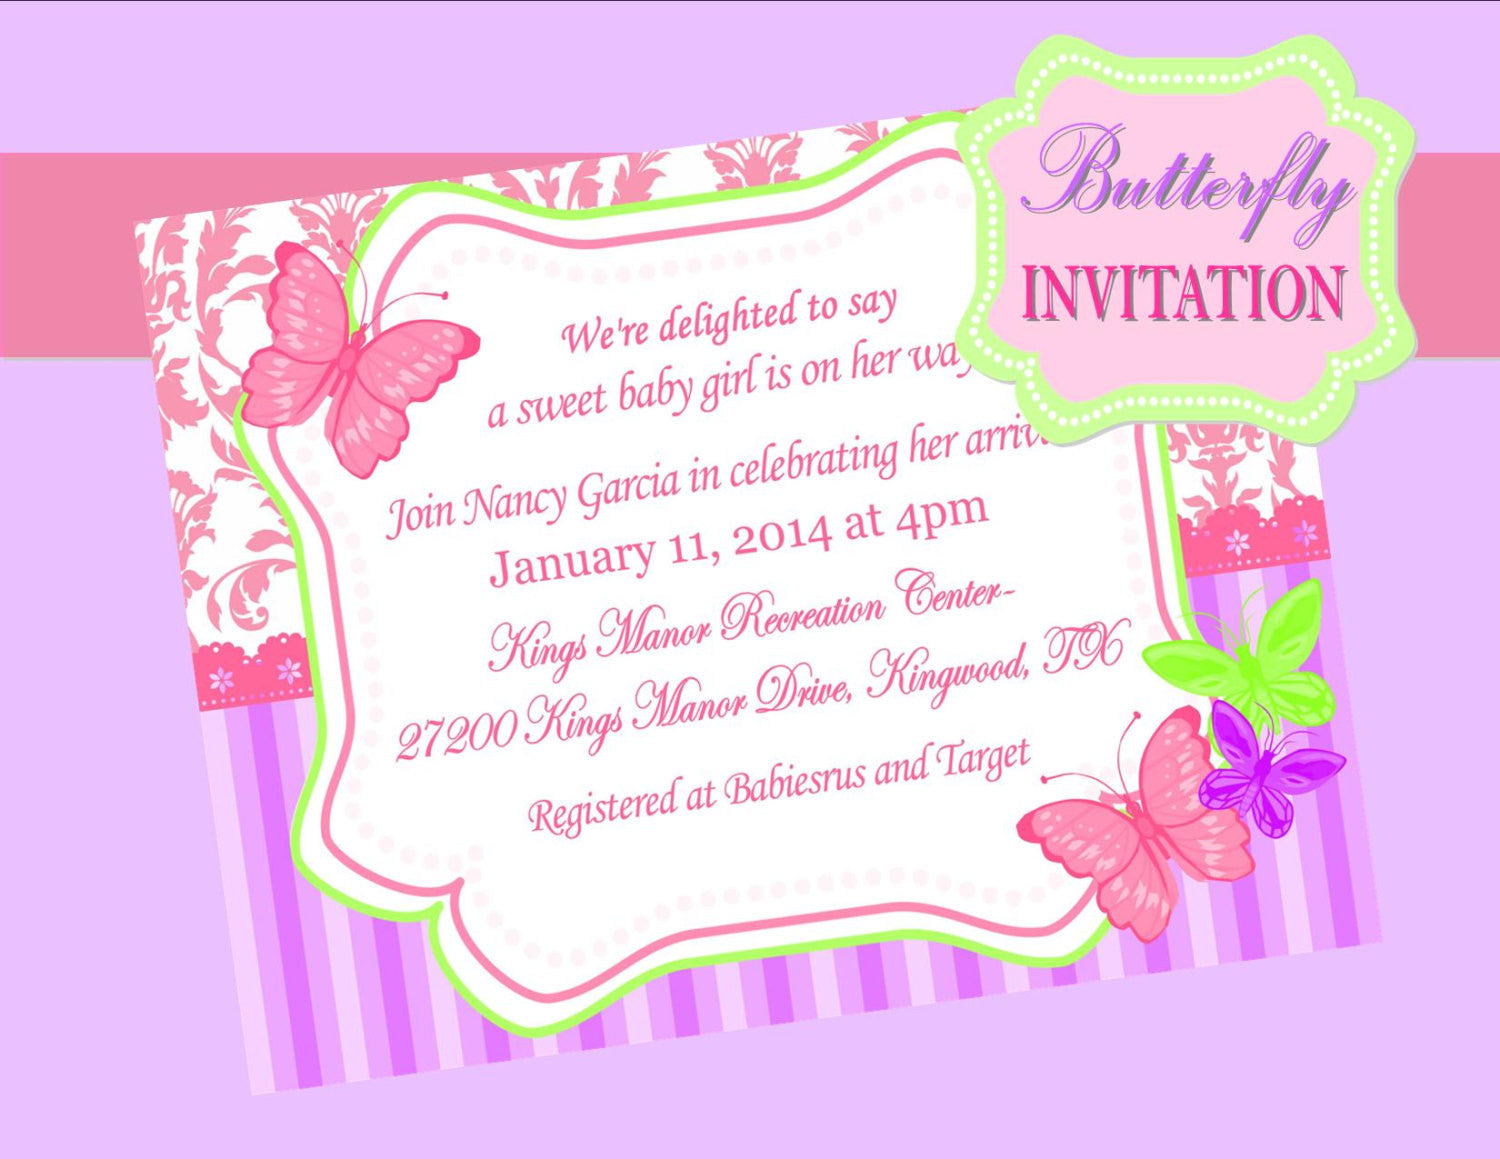 BUTTERFLY INVITATION - Birthday Party - Wedding- Shower